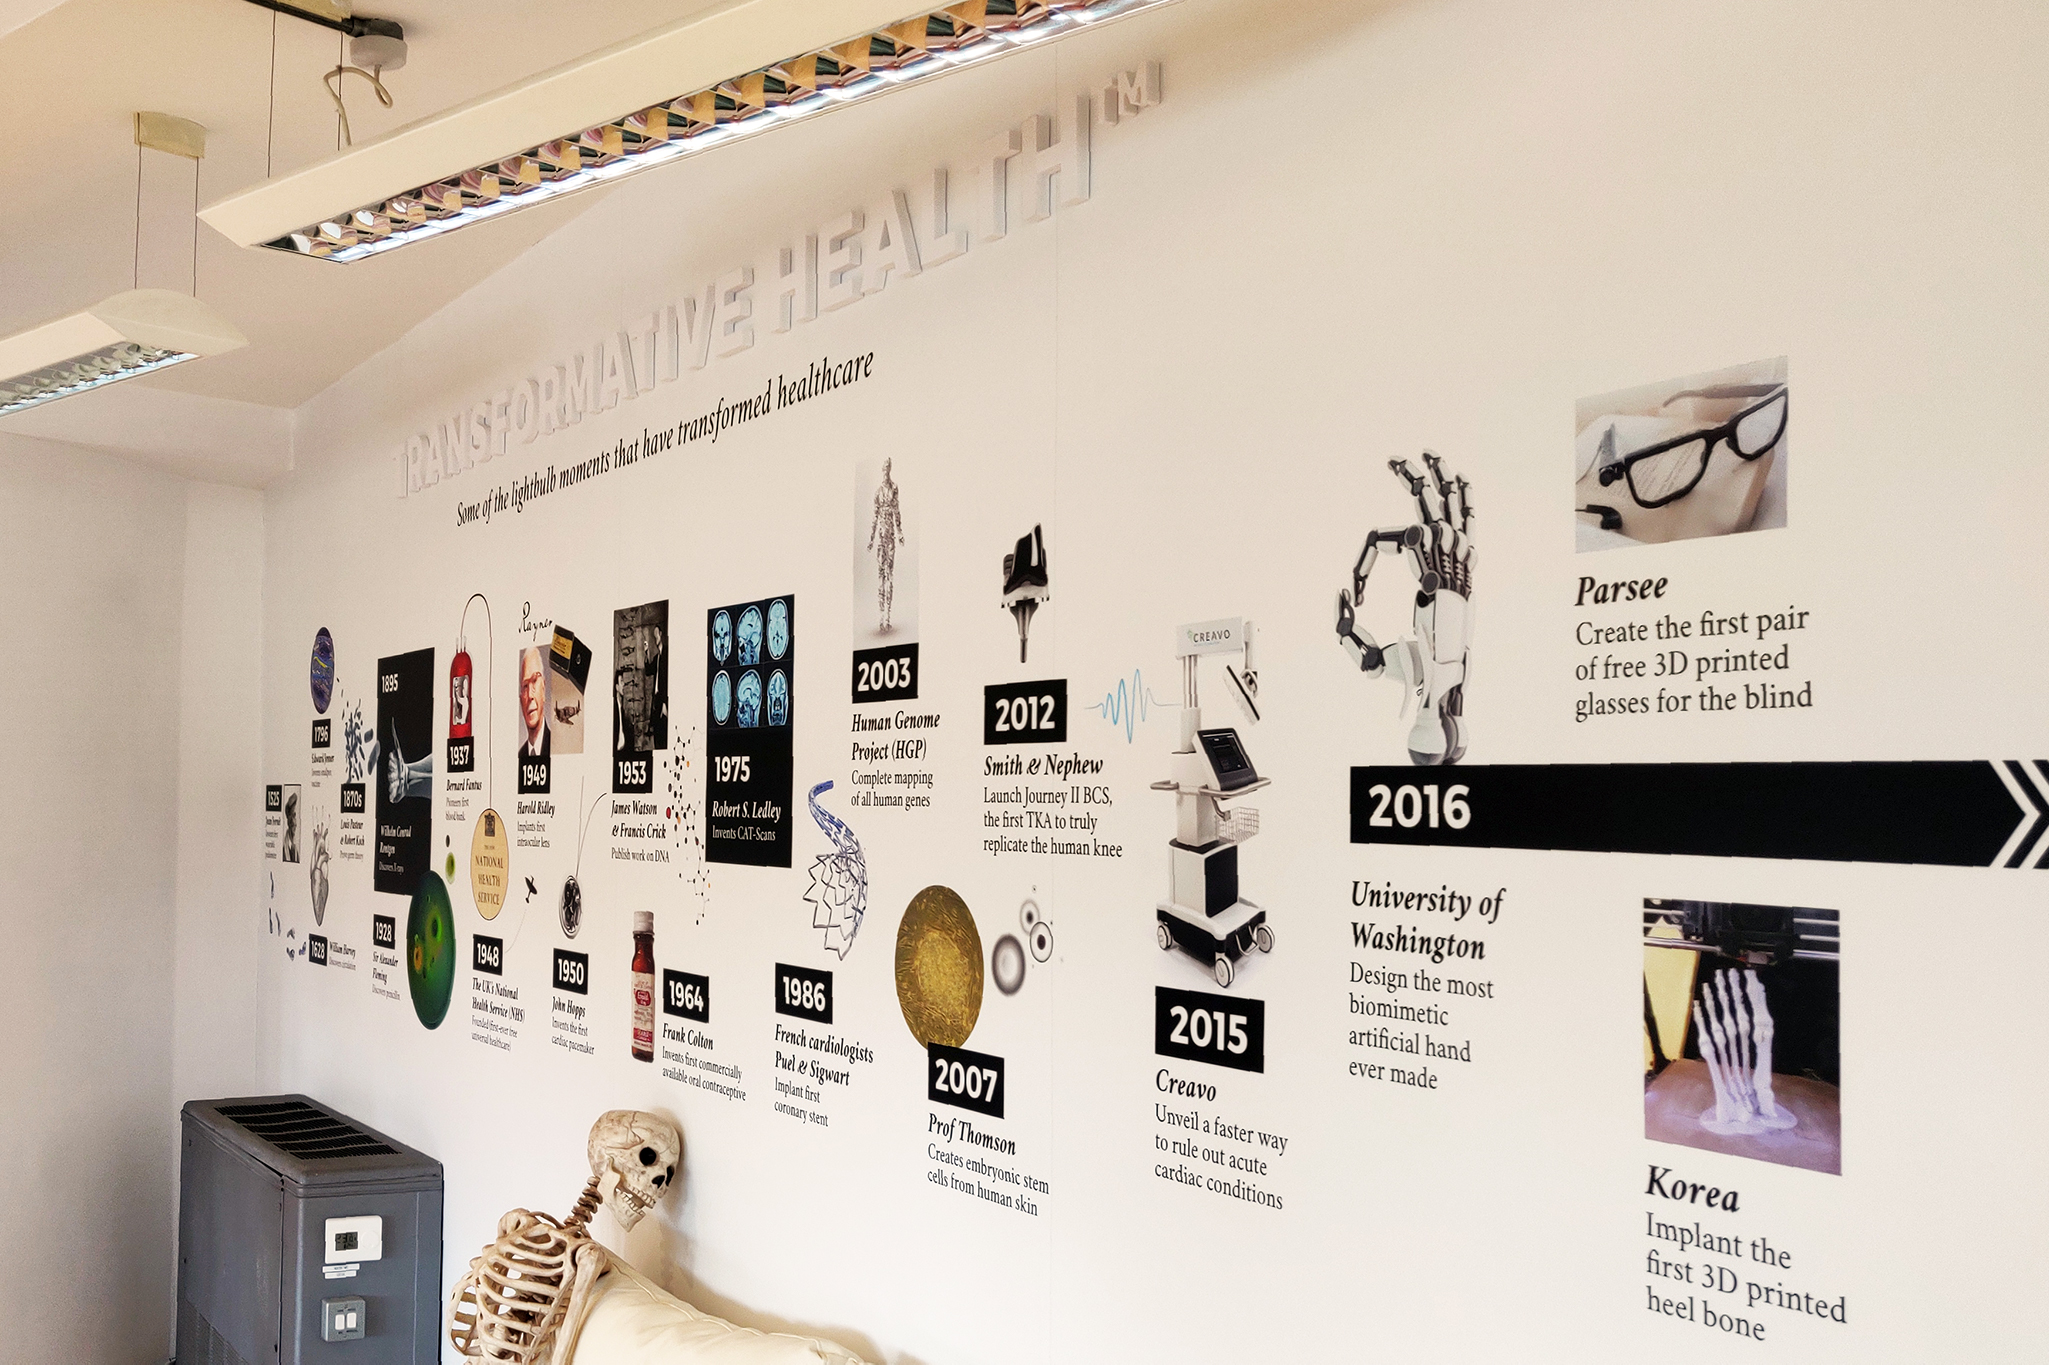 Create Health Bristol office displaying Transformative Health key dates over the decades